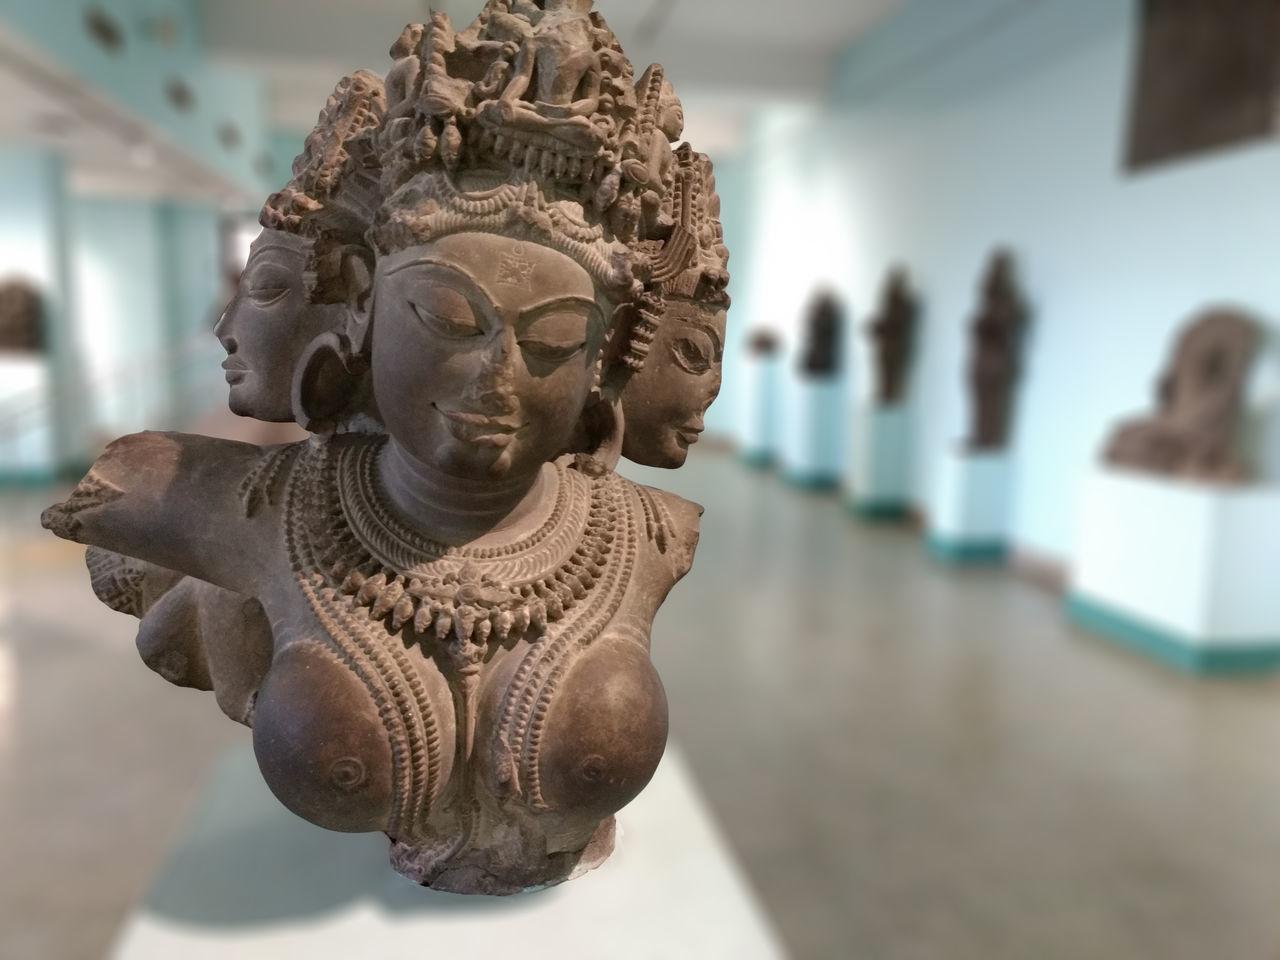 "Put your imagination into reality and you will create something beautiful - ✍Code Nemesis✍ This sculpture of Tara or also known as Jetsun Dölma was made in 11th century AD. Tara is the female Buddha in Vajrayana Buddhism. She is known as the ""mother of liberation"", and represents the virtues of success in work and achievements. Each head shows a form of Tara. Most widely known forms of Tara are : GREEN TARA known as the Buddha of enlightened activity WHITE TARA, also known for compassion, long life, healing and serenity RED TARA, of fierce aspect associated with magnetizing all good things BLACK TARA, associated with power YEllOW TARA associated with wealth and prosperity BLUE TARA, associated with transmutation of anger. Art Carving - Craft Product Craft Creativity Focus On Foreground Sculpture Statue Hanging Out History Historical Monuments Historical Building Historical Place Meusem Enjoying Life Capture The Moment Eye4photography  From My Point Of View Taking Photos Taking Pictures Showcase July EyeEm Best Shots Check This Out Sclupture No People Perspective"